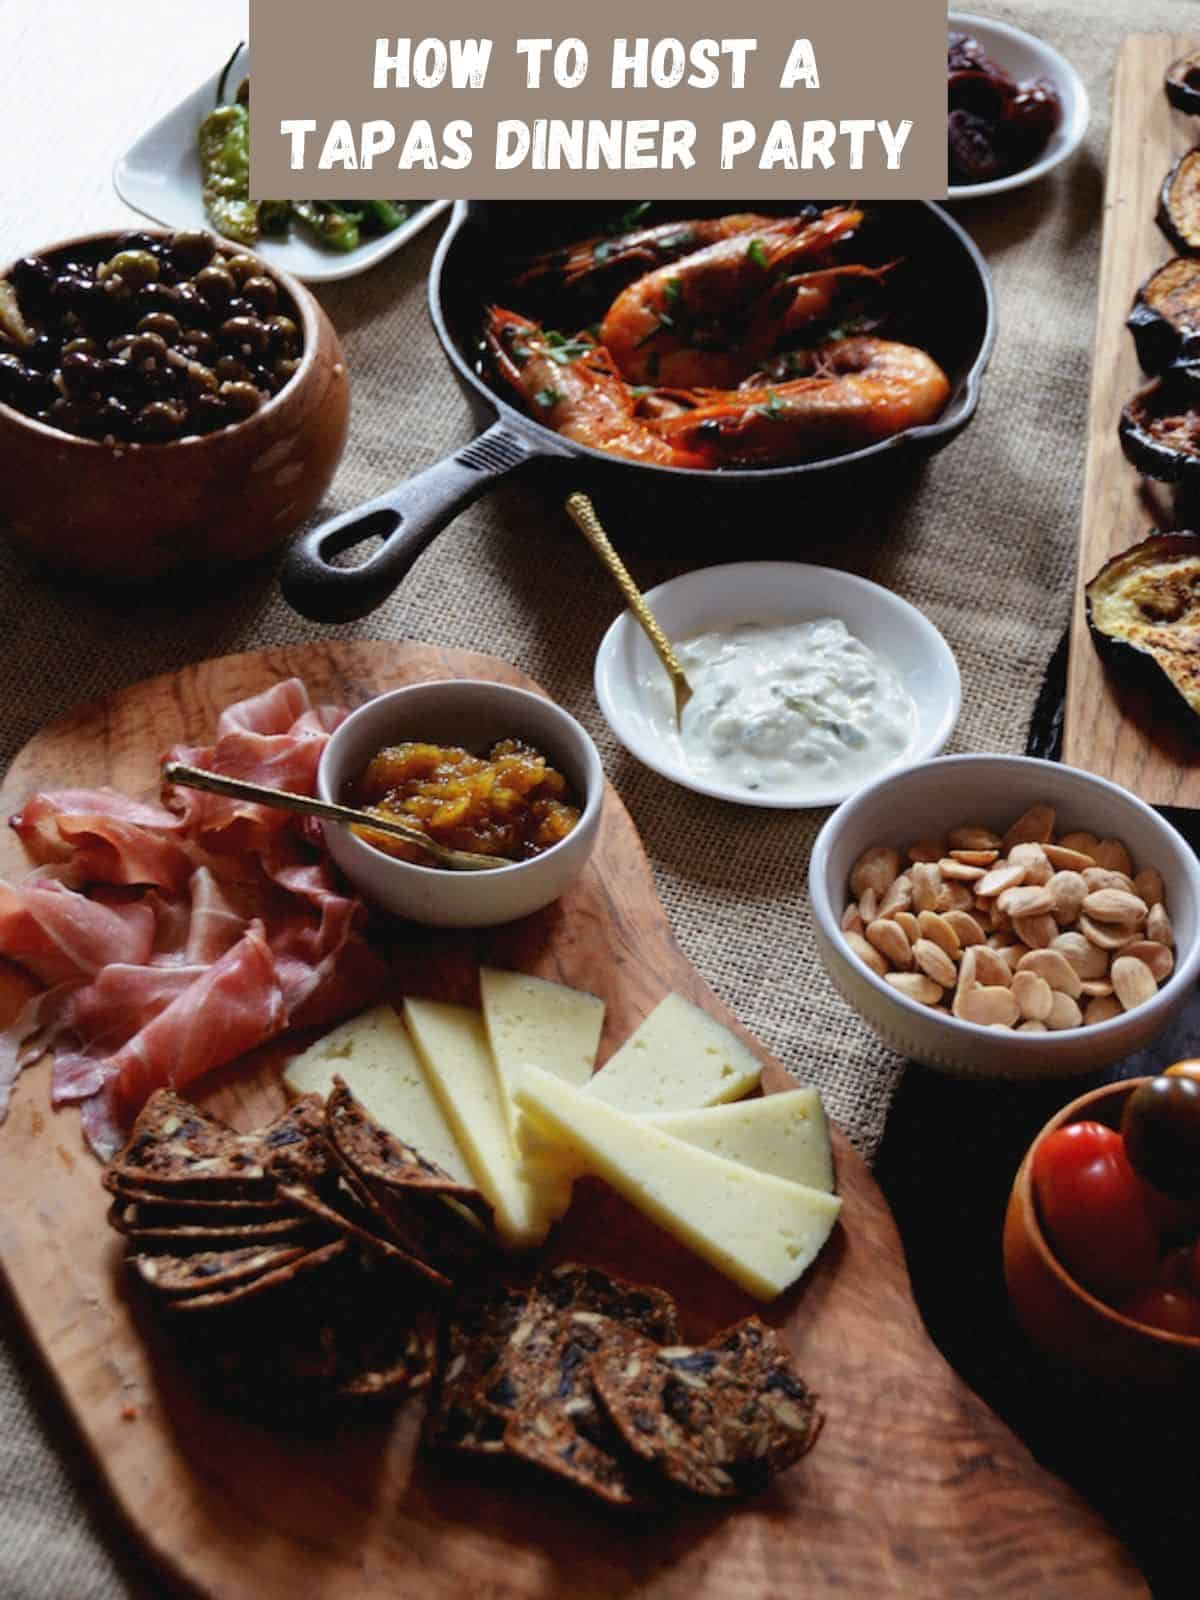 Tapas dinner party foods